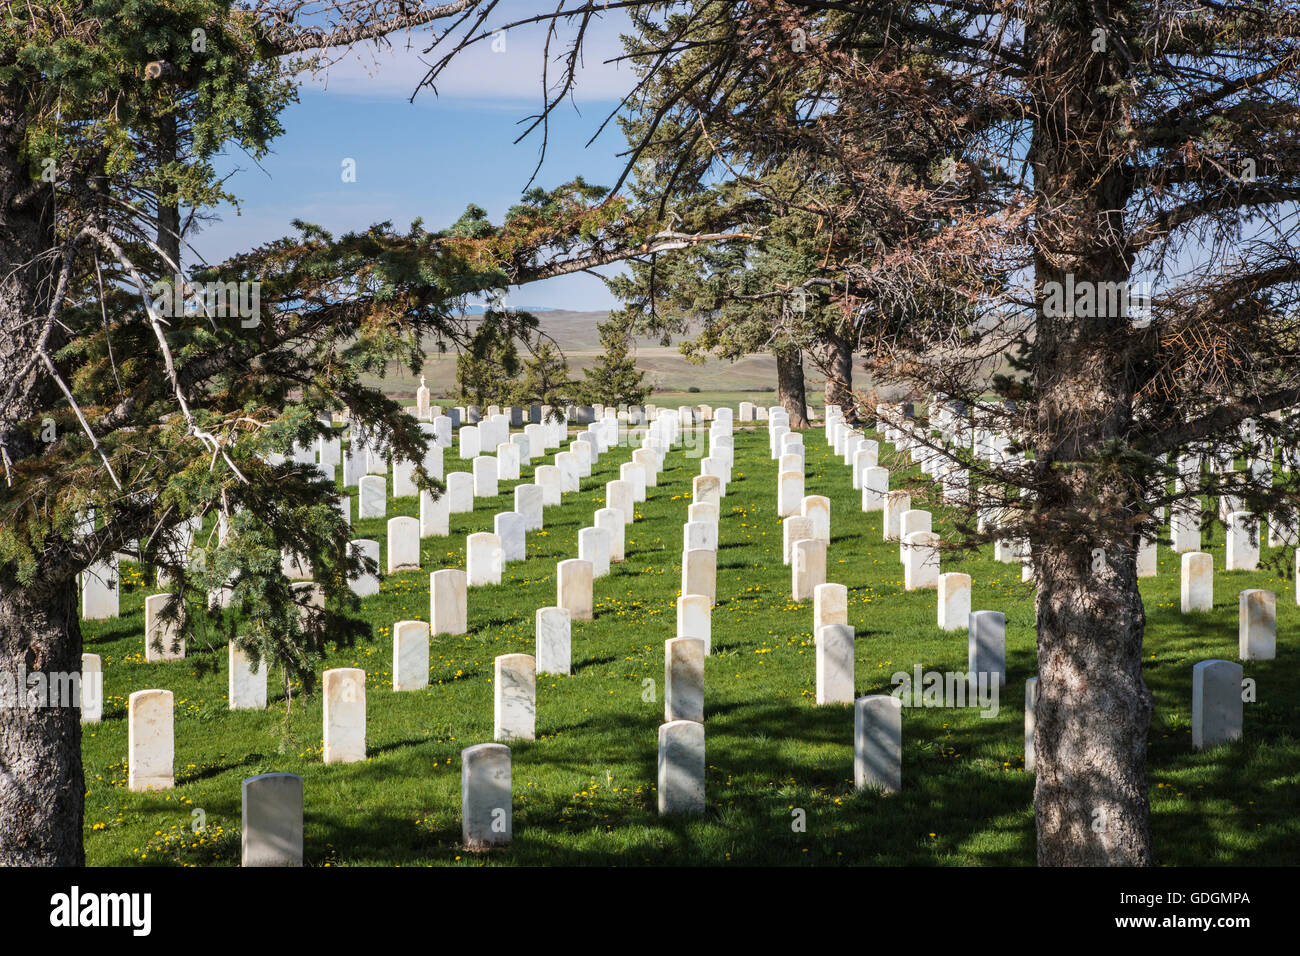 US Military cemetery at Little Bighorn Montana US - Stock Image